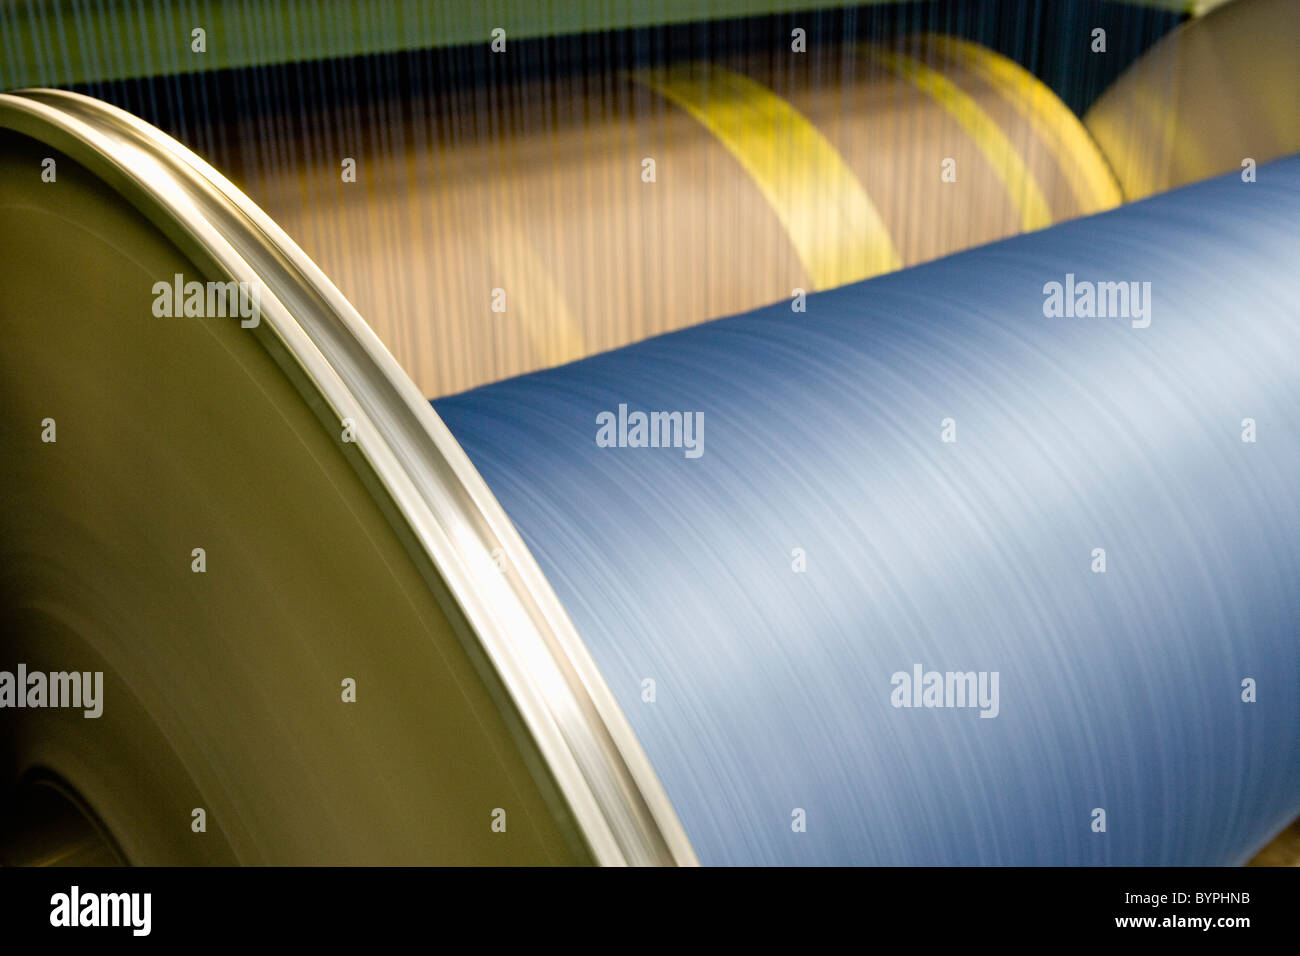 Warp beam of weaving machine loom in carpet tile factory - Stock Image